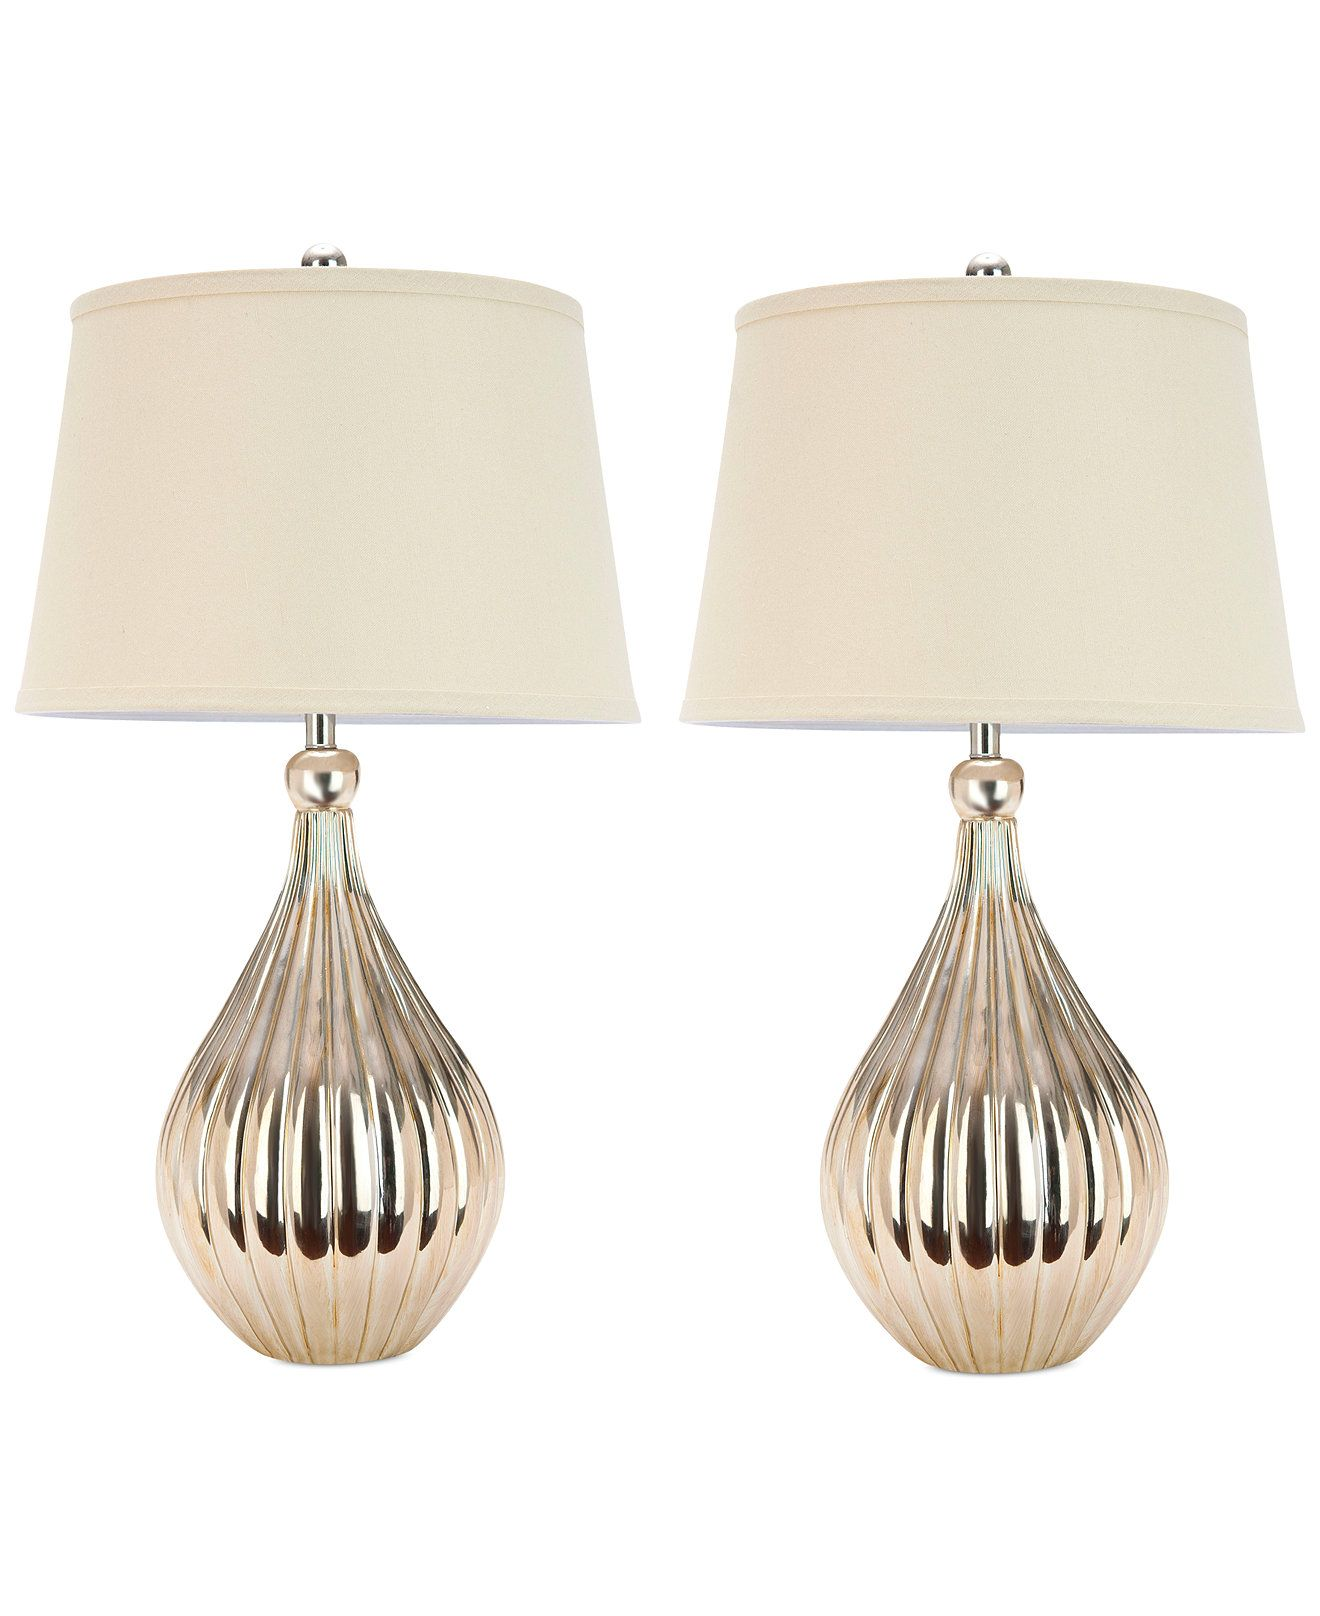 Safavieh Set of 2 Elli Champagne Gourd Lamps - Lighting & Lamps - For The Home - Macy's